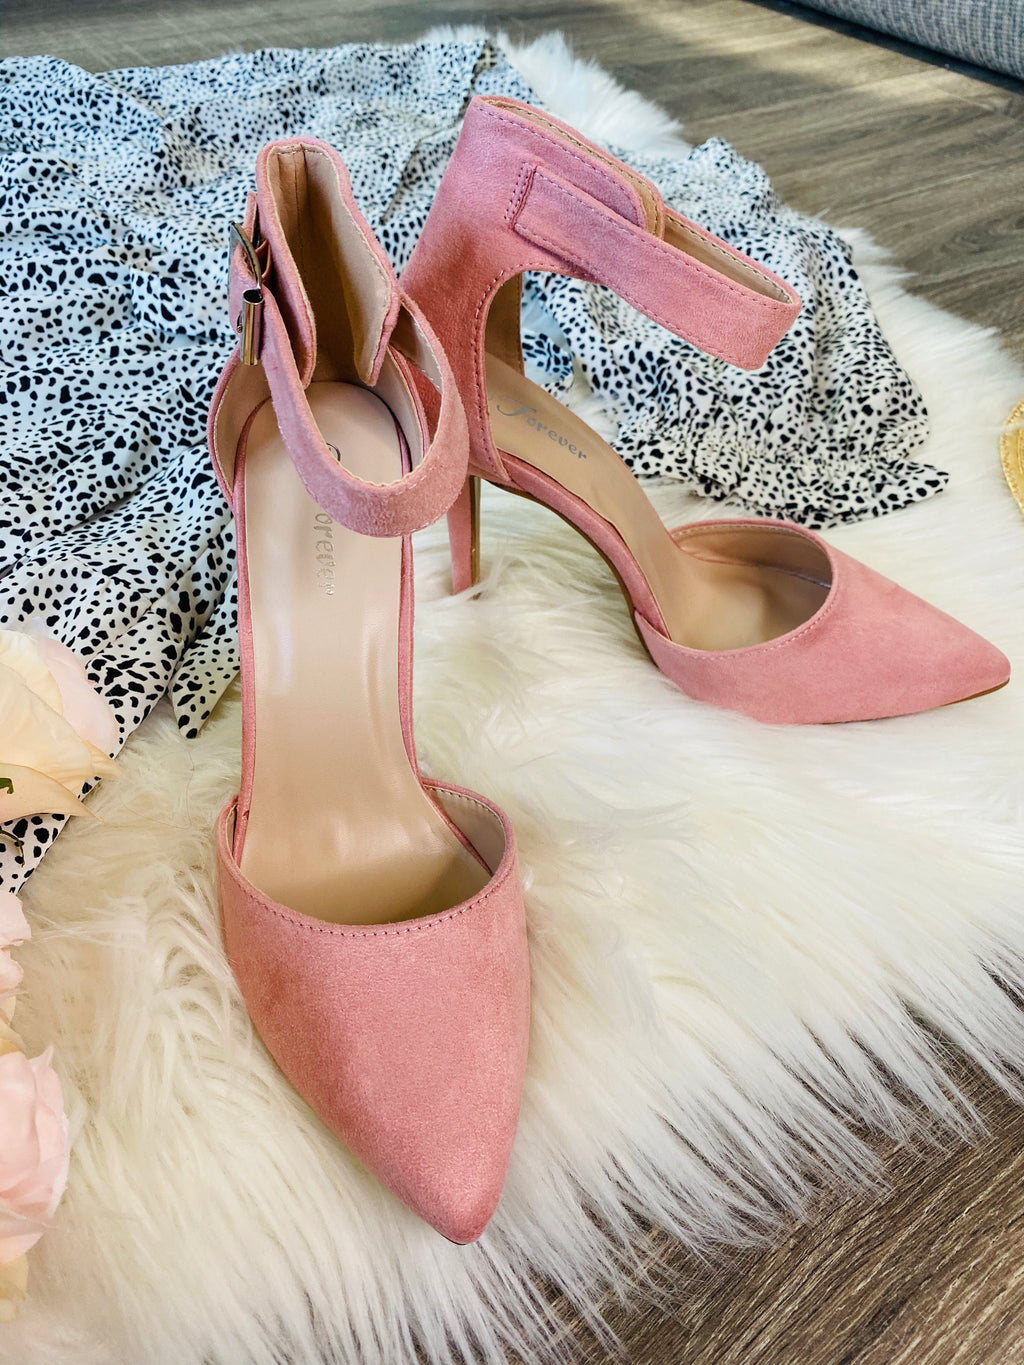 Classy Pink Pointed Heels - The Darling Style